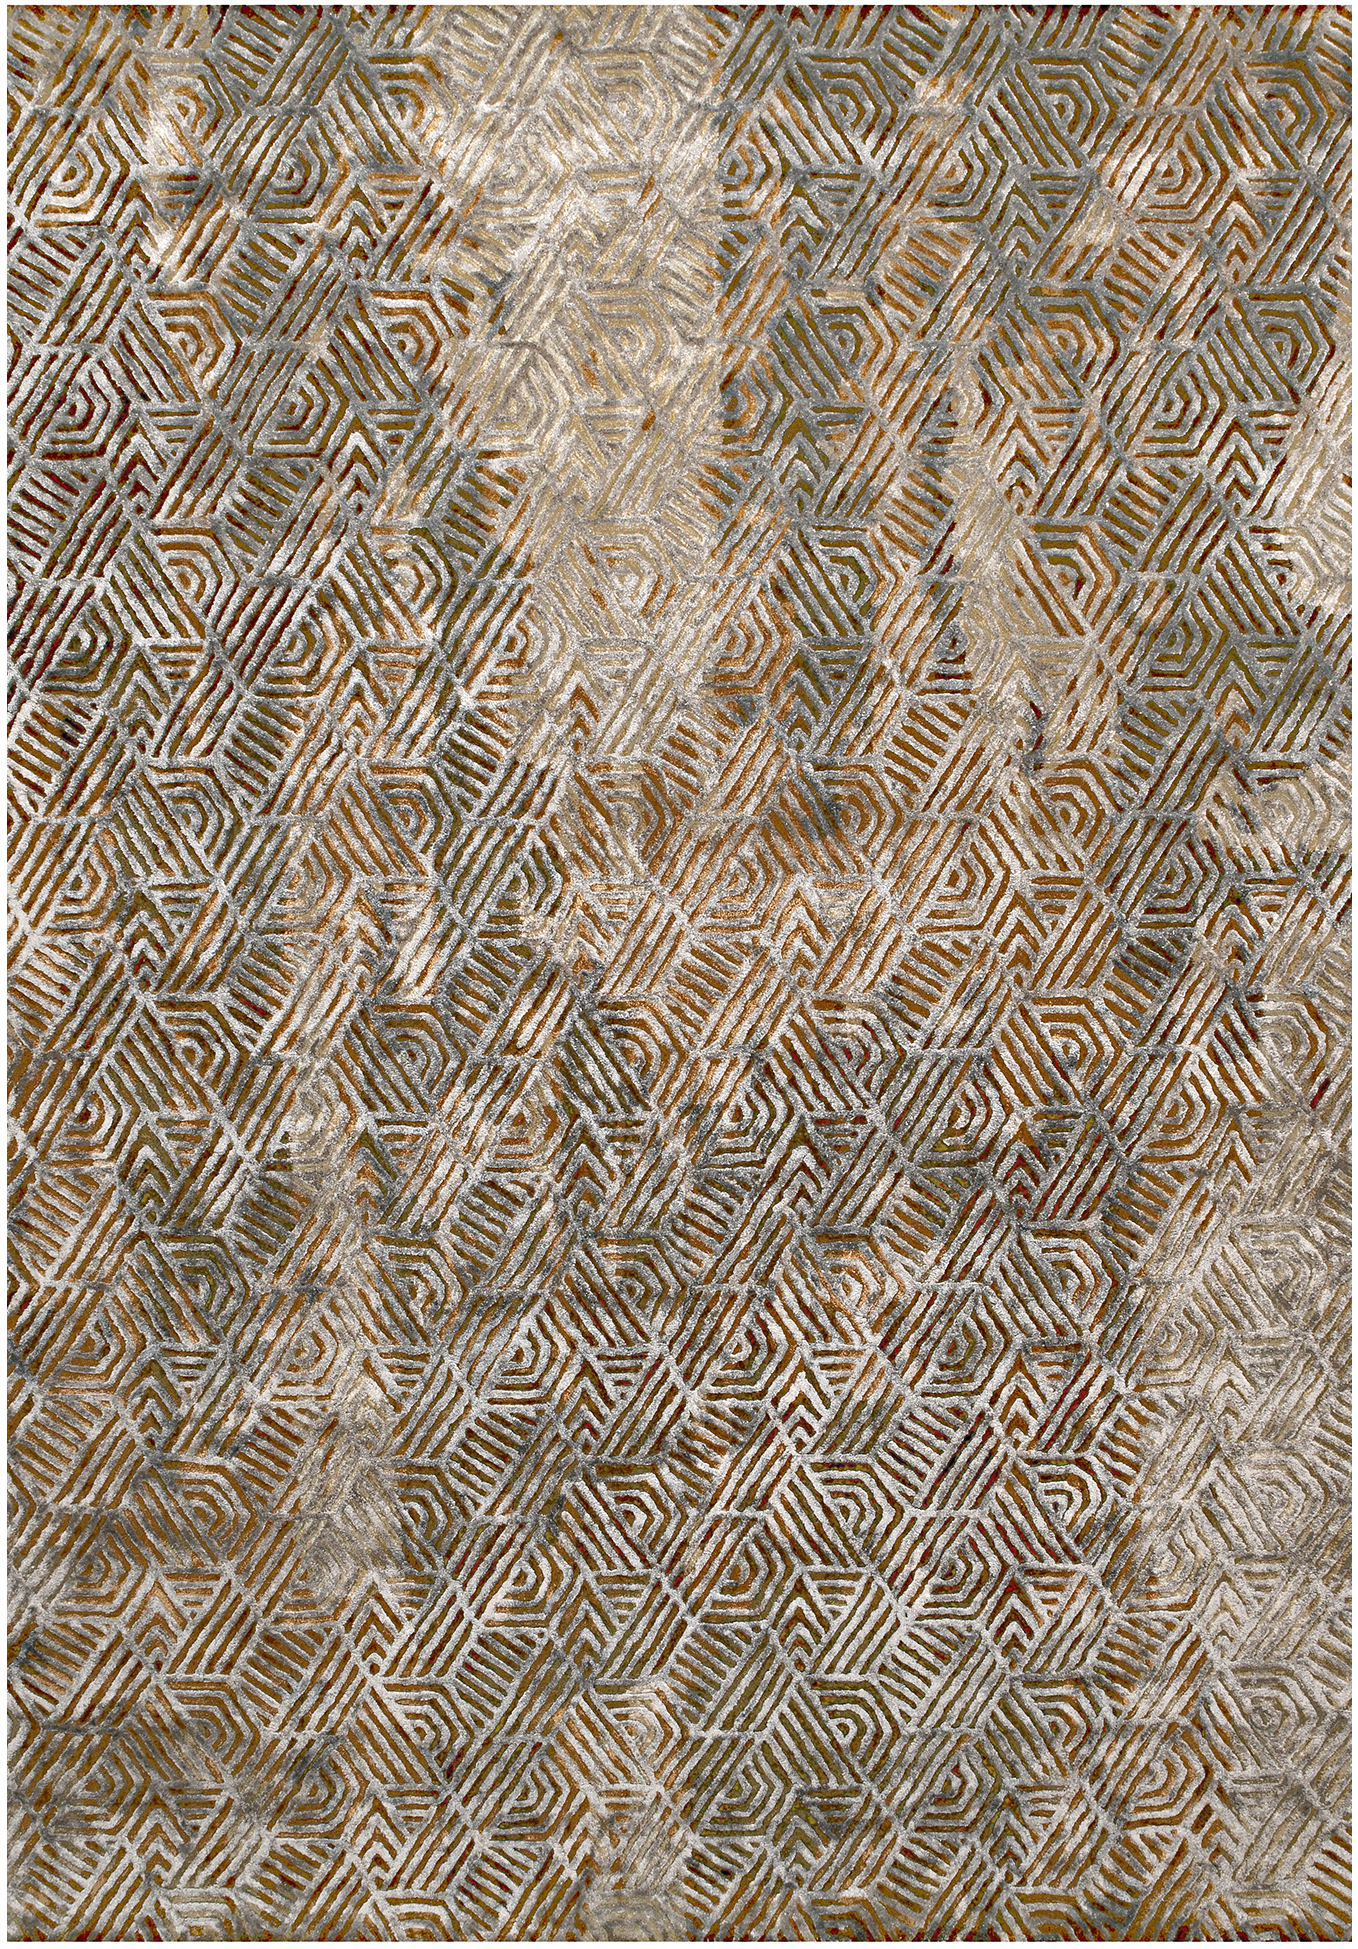 Arroyo Copper Charcoal Copper Charcoal Carpets & Rugs